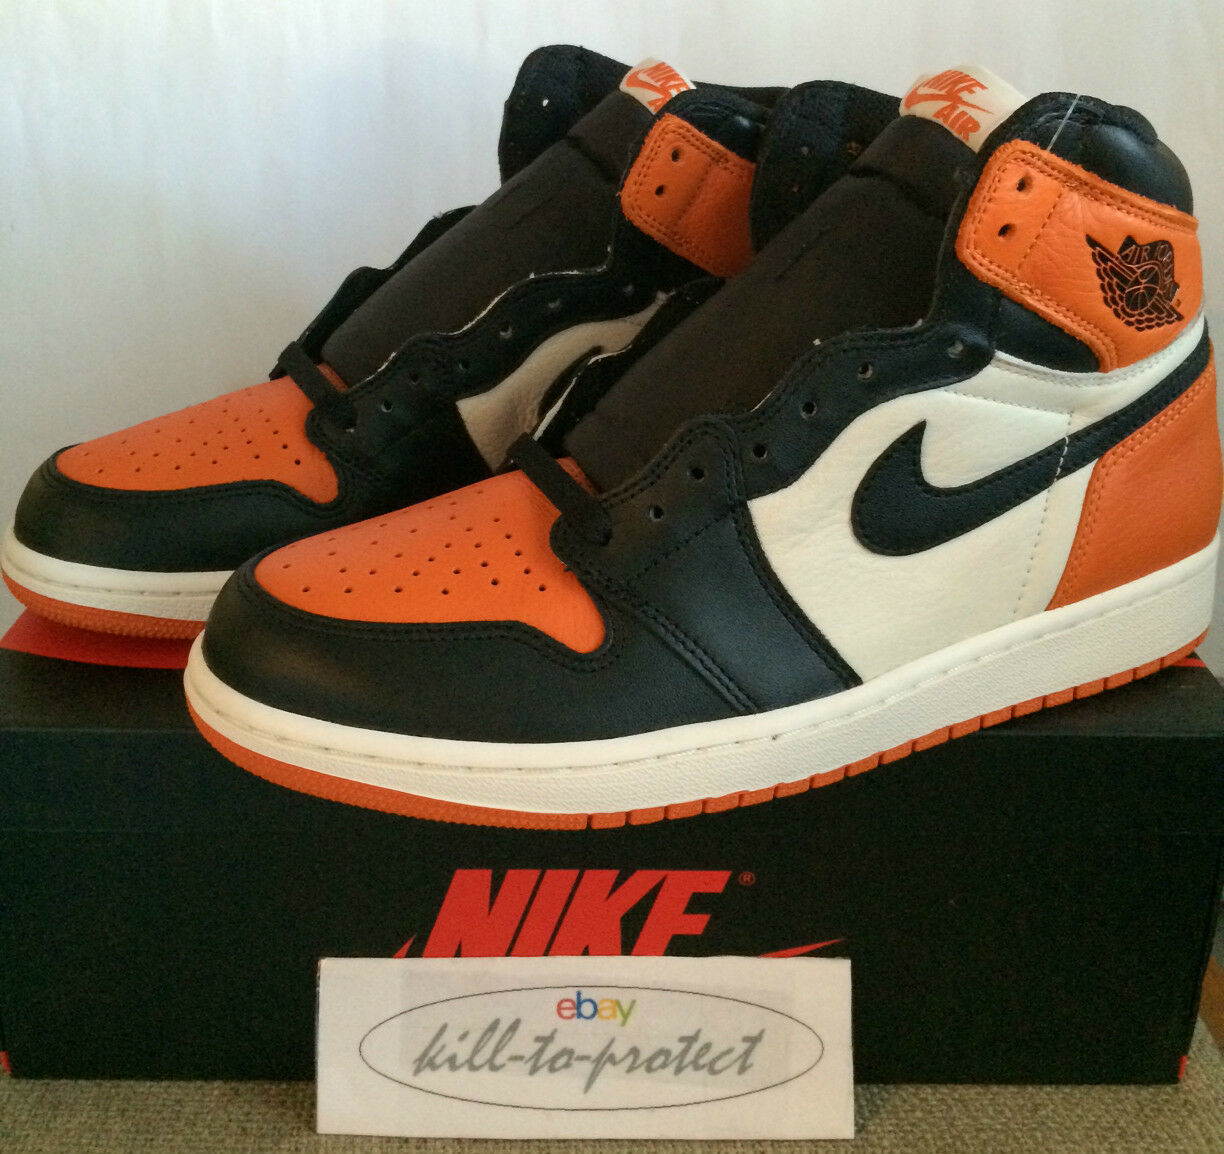 NIKE AIR JORDAN 1 SHATTERED BACKBOARD Sz UK US 8 9 10 11 12 Bred 555088-005 QG